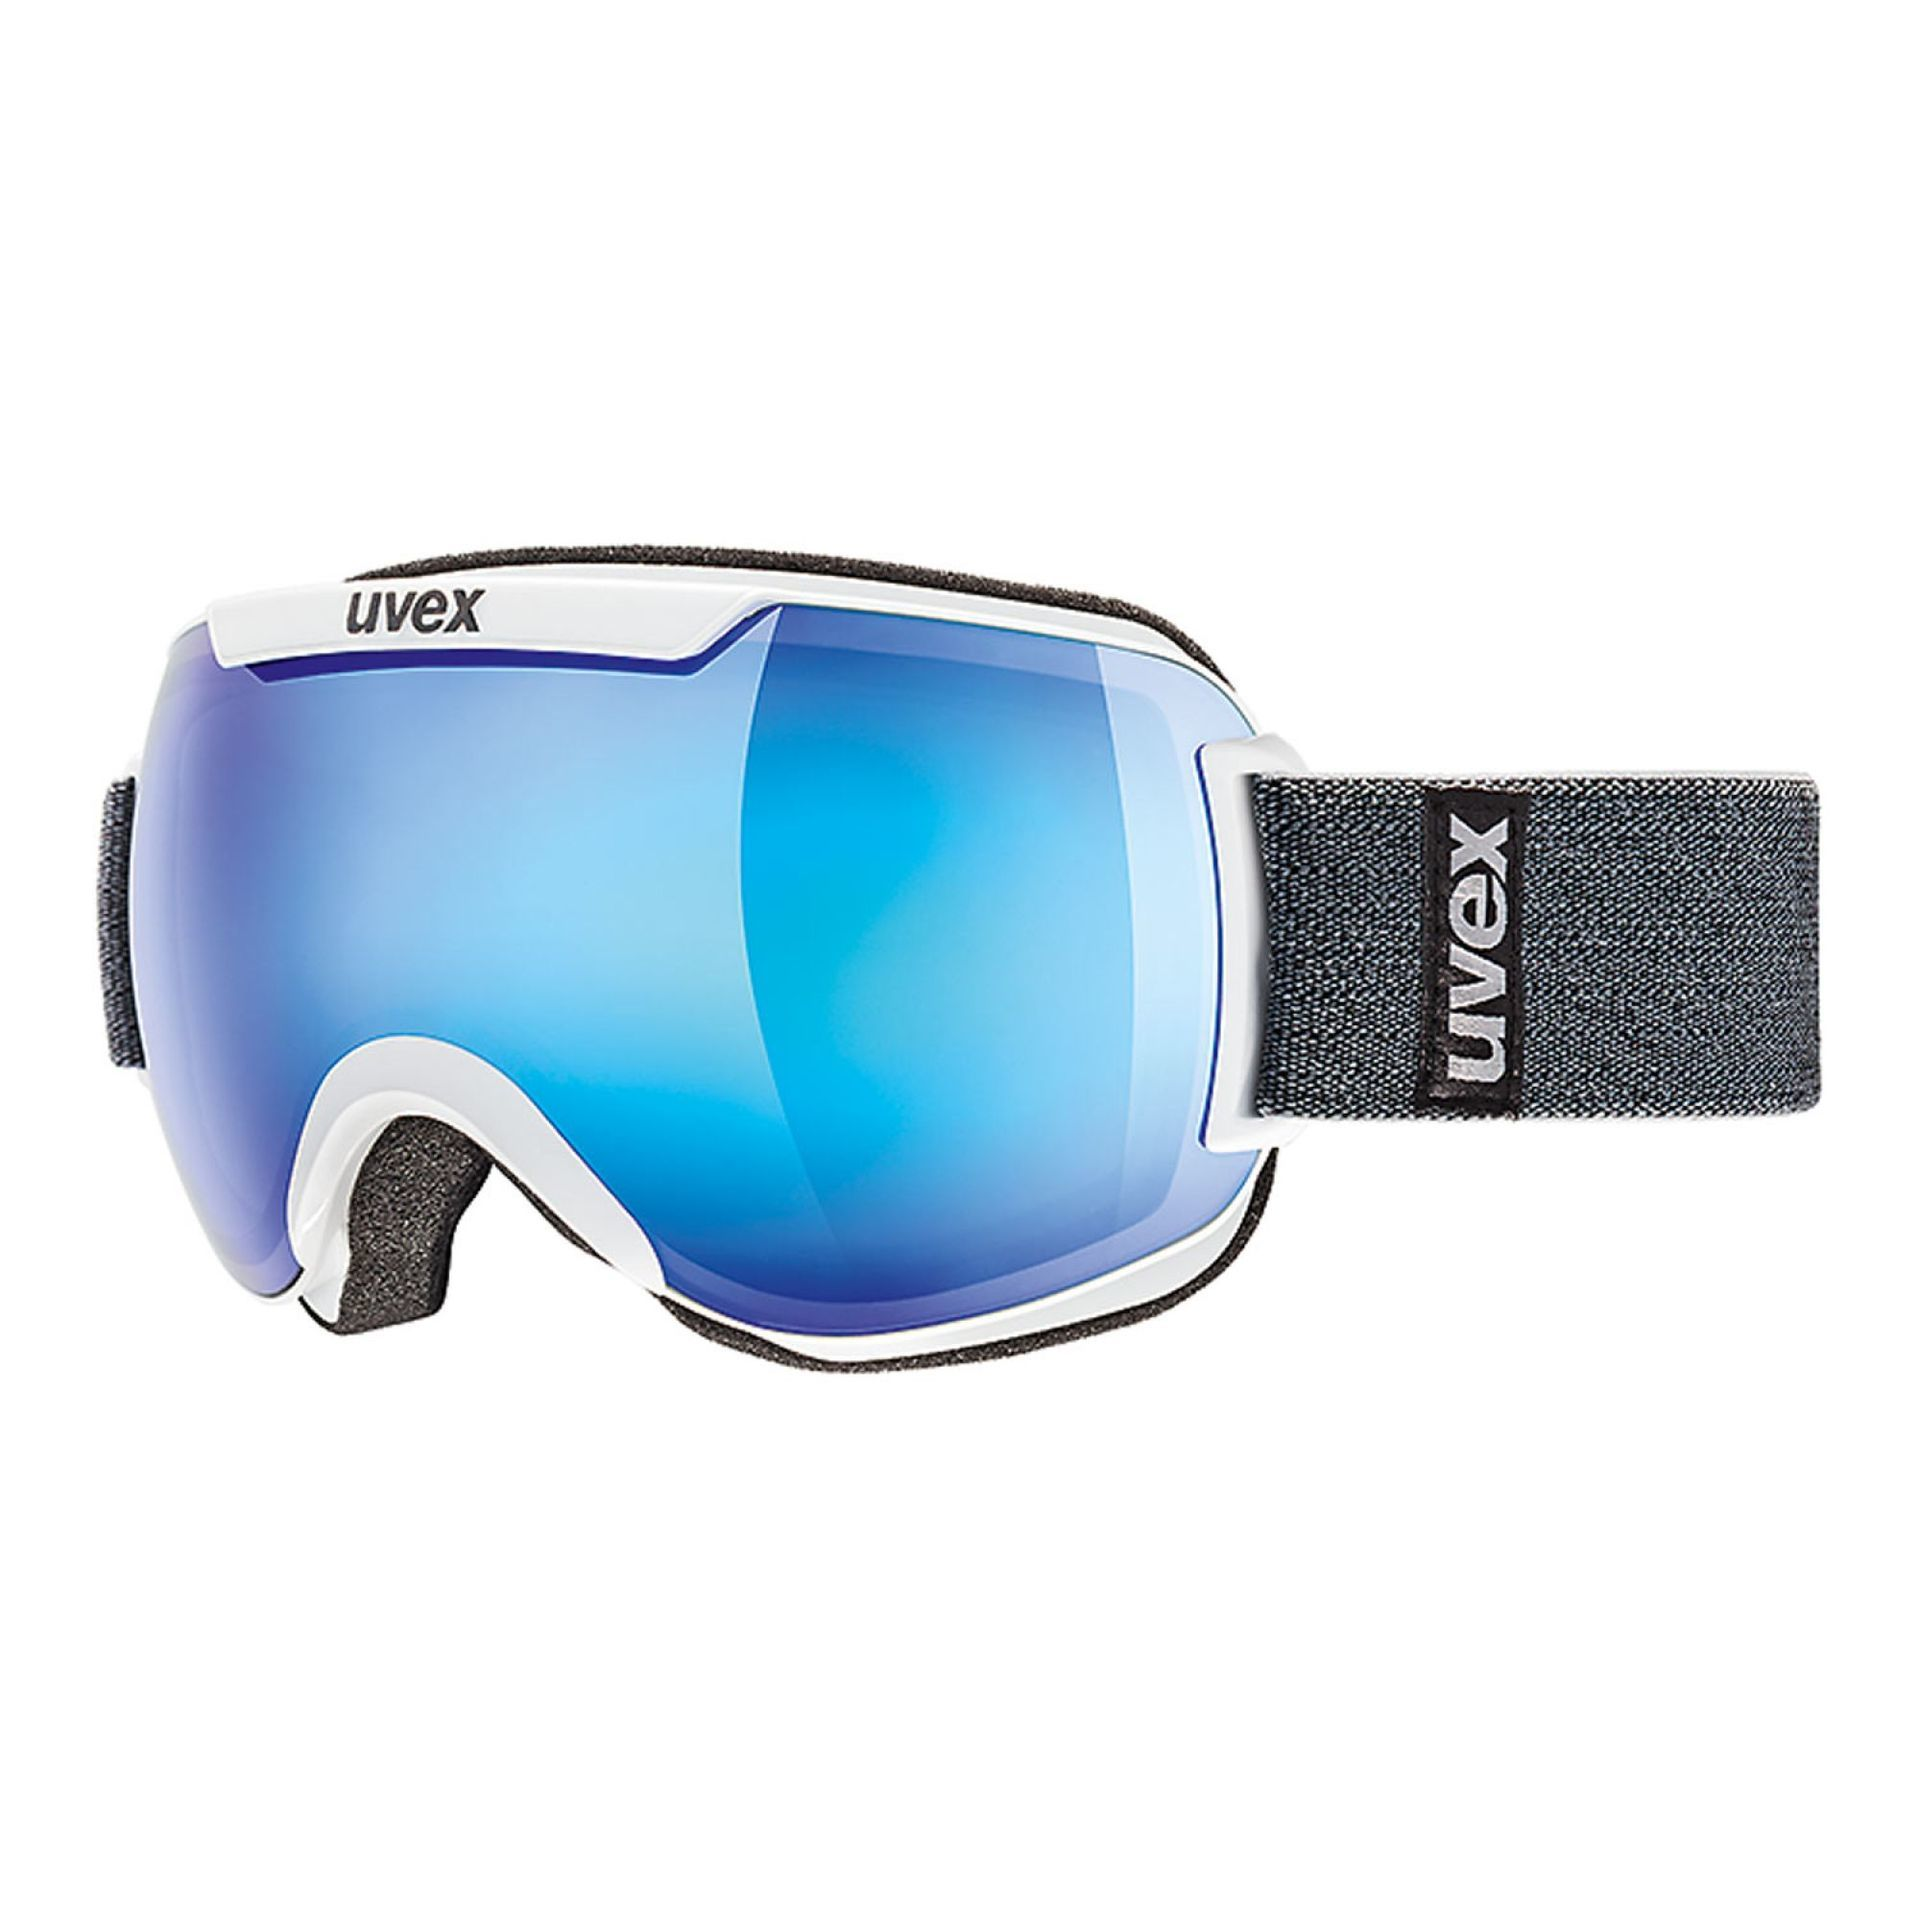 GOGLE UVEX  DOWNHILL 2000 FM WHITE|MIRROR BLUE CLEAR